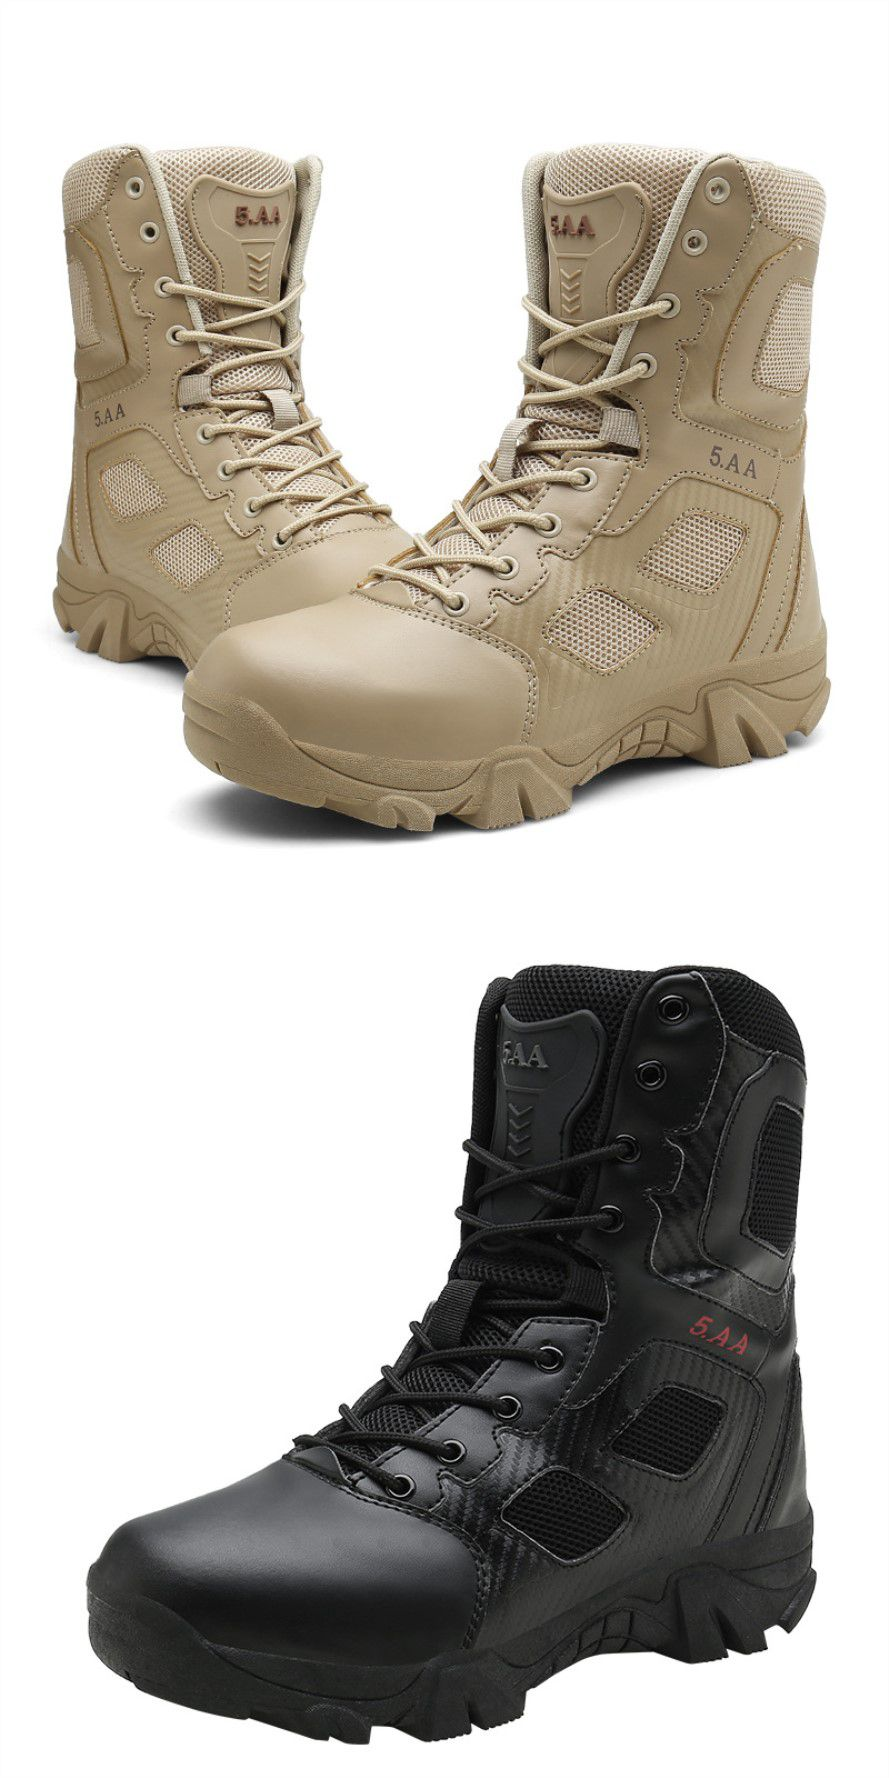 High top Shoes Outdoor Climbing Off road Men's Boots Wear resistant Military Boots Men's Special Hiking Climbing Tactical Boots